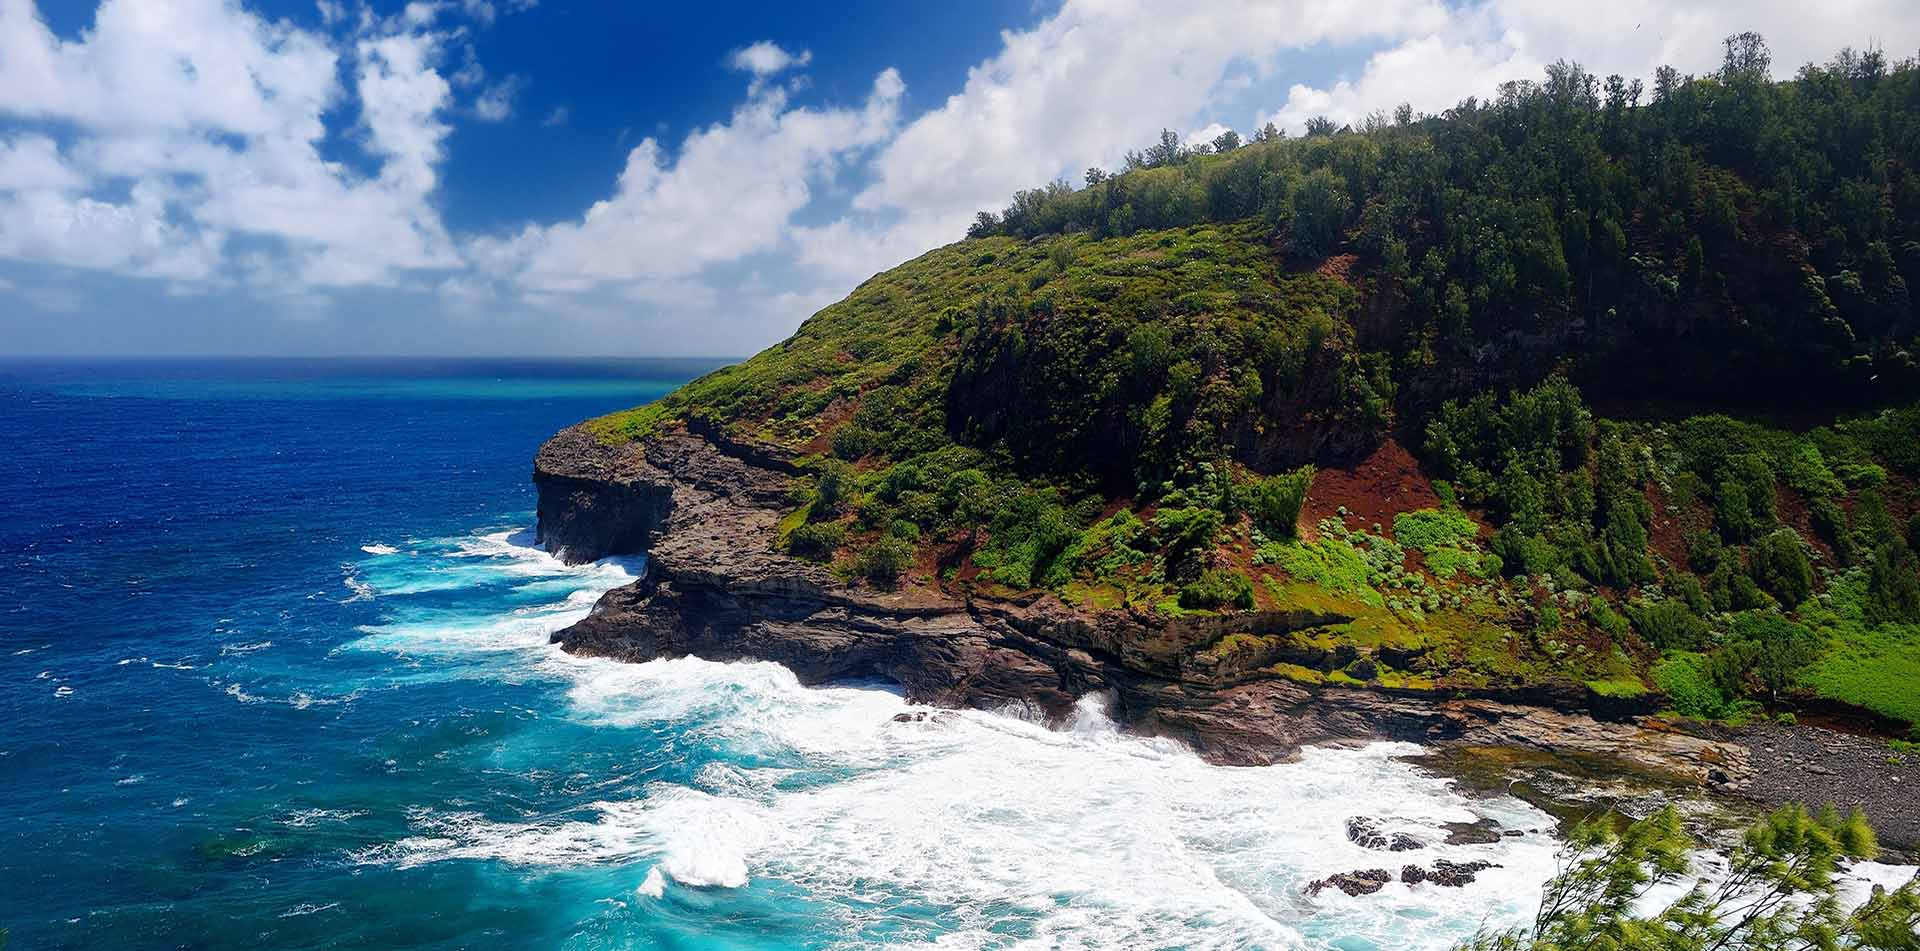 North America United States Hawaii scenic Kauai Kilauea lighthouse bay blue water lush cliff - luxury vacation destinations